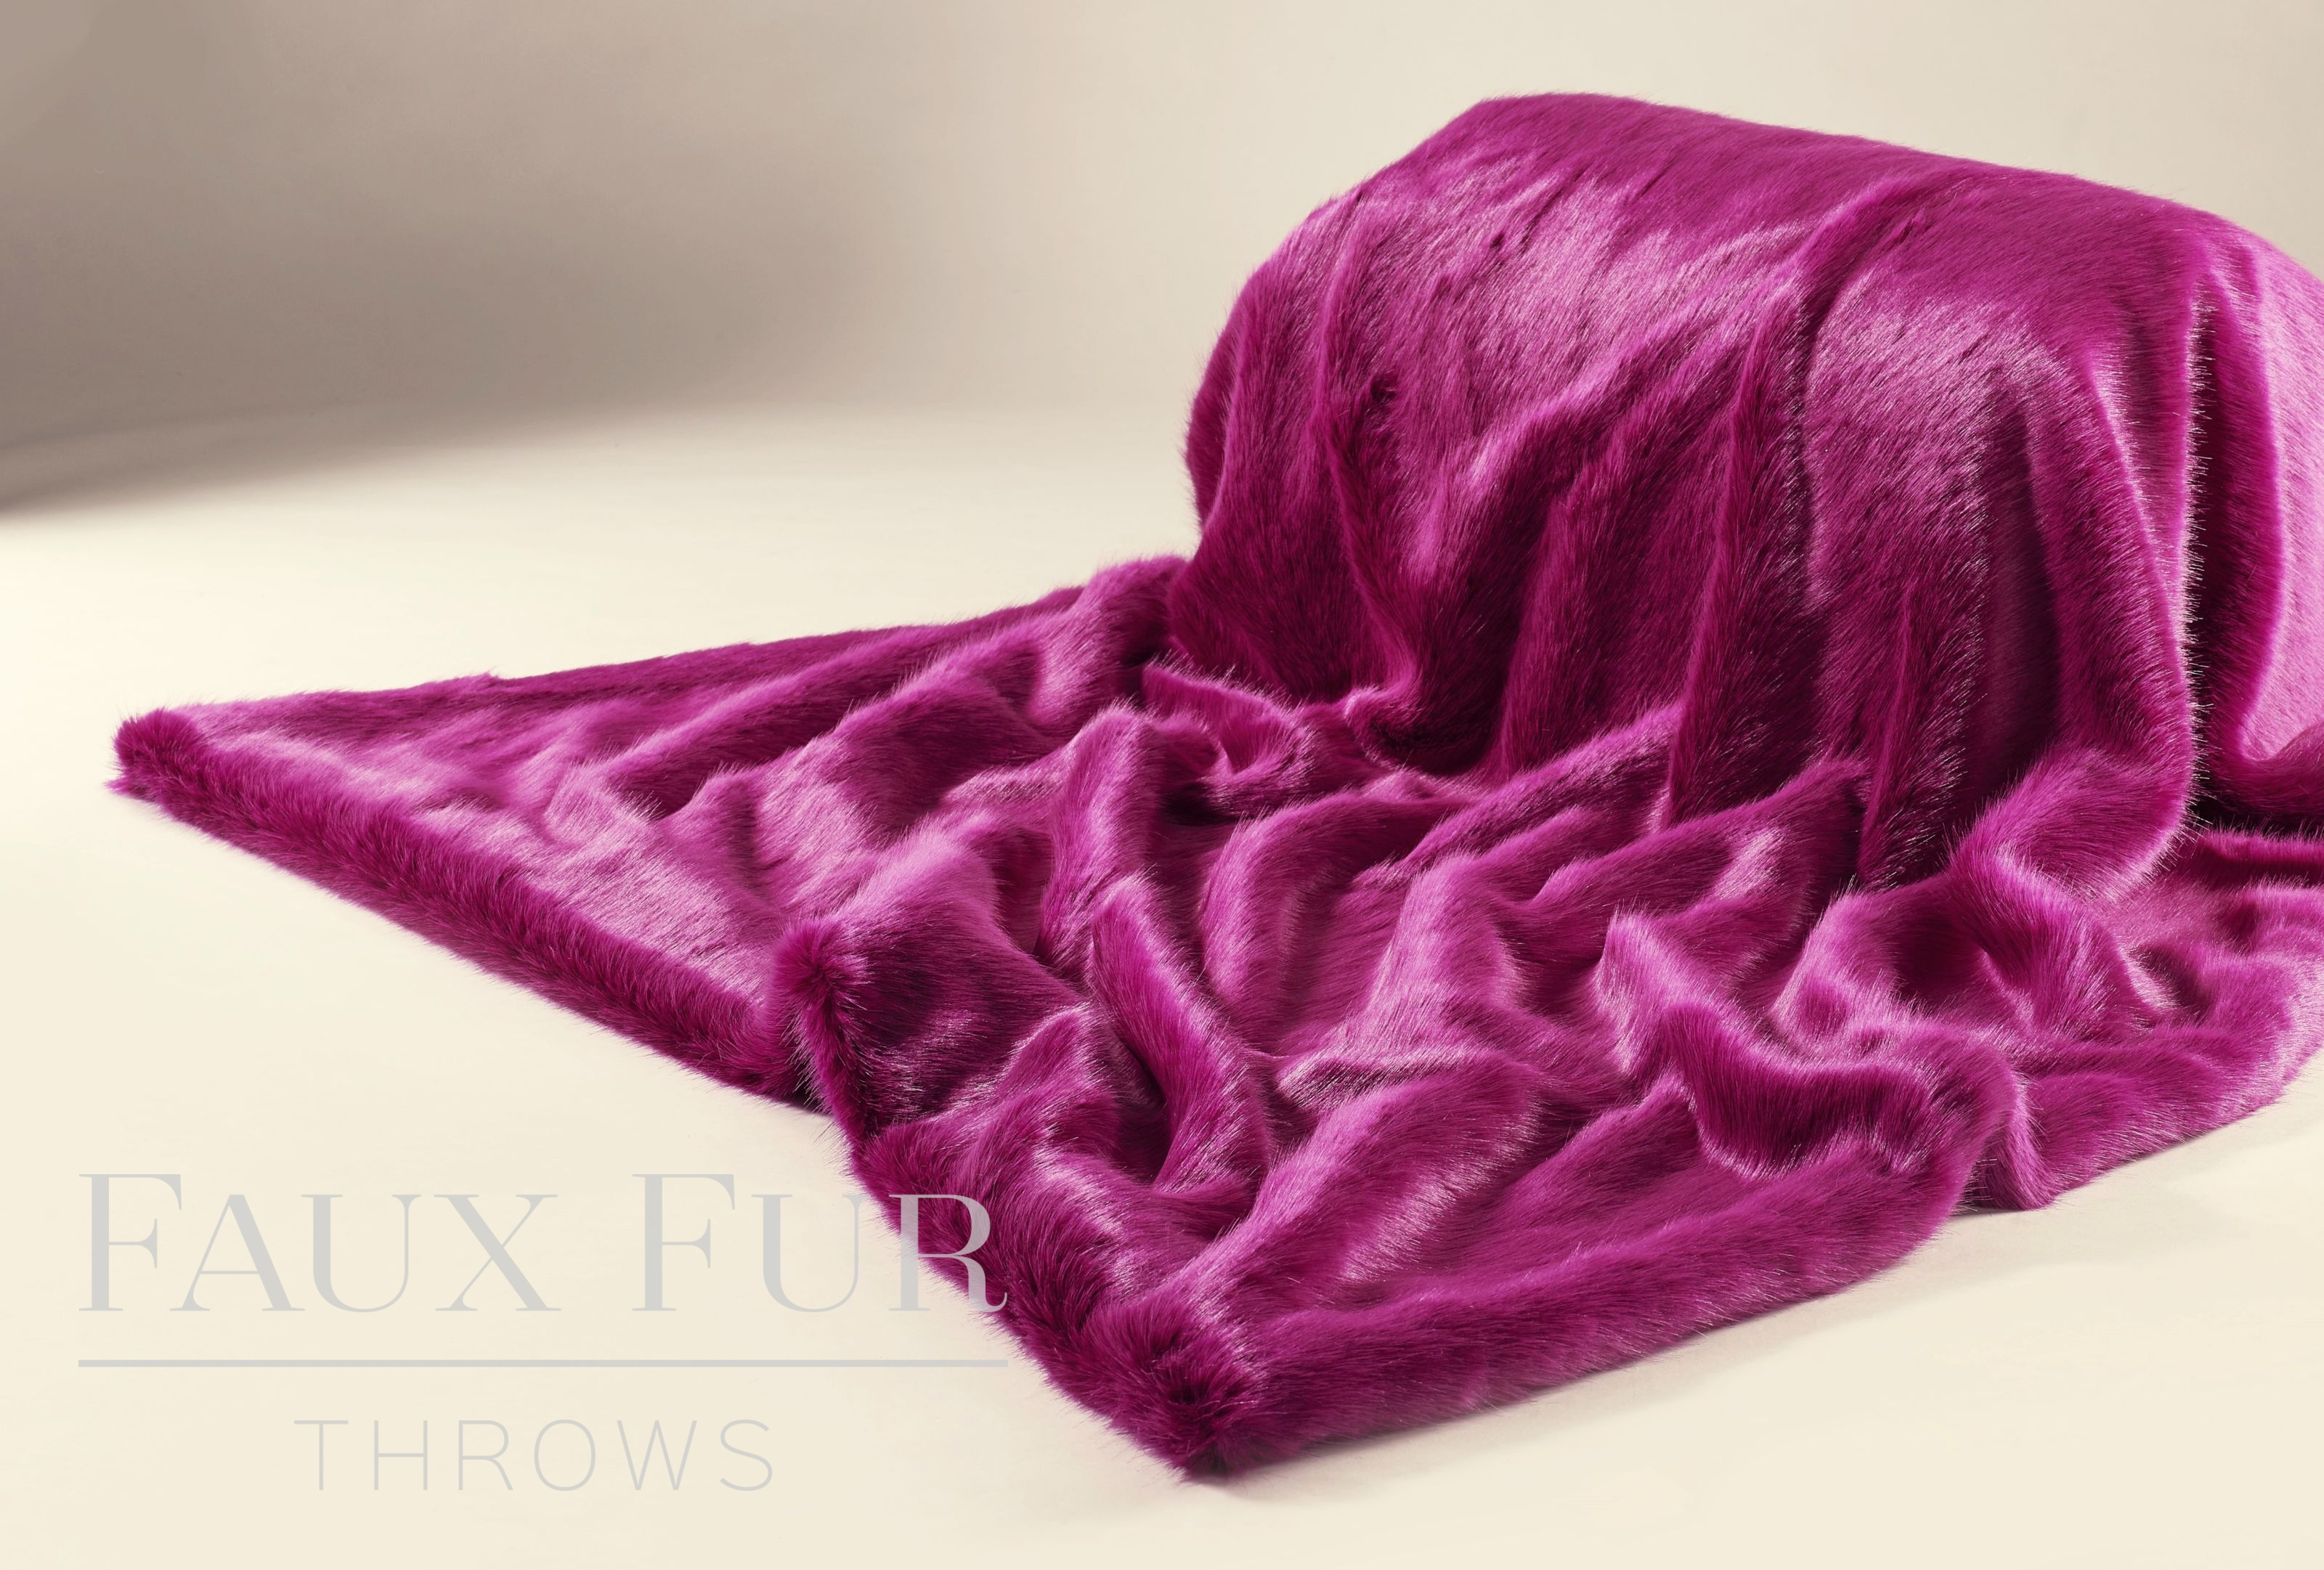 Completely new Pink Faux Fur Throw - HOT MAGENTA KH88